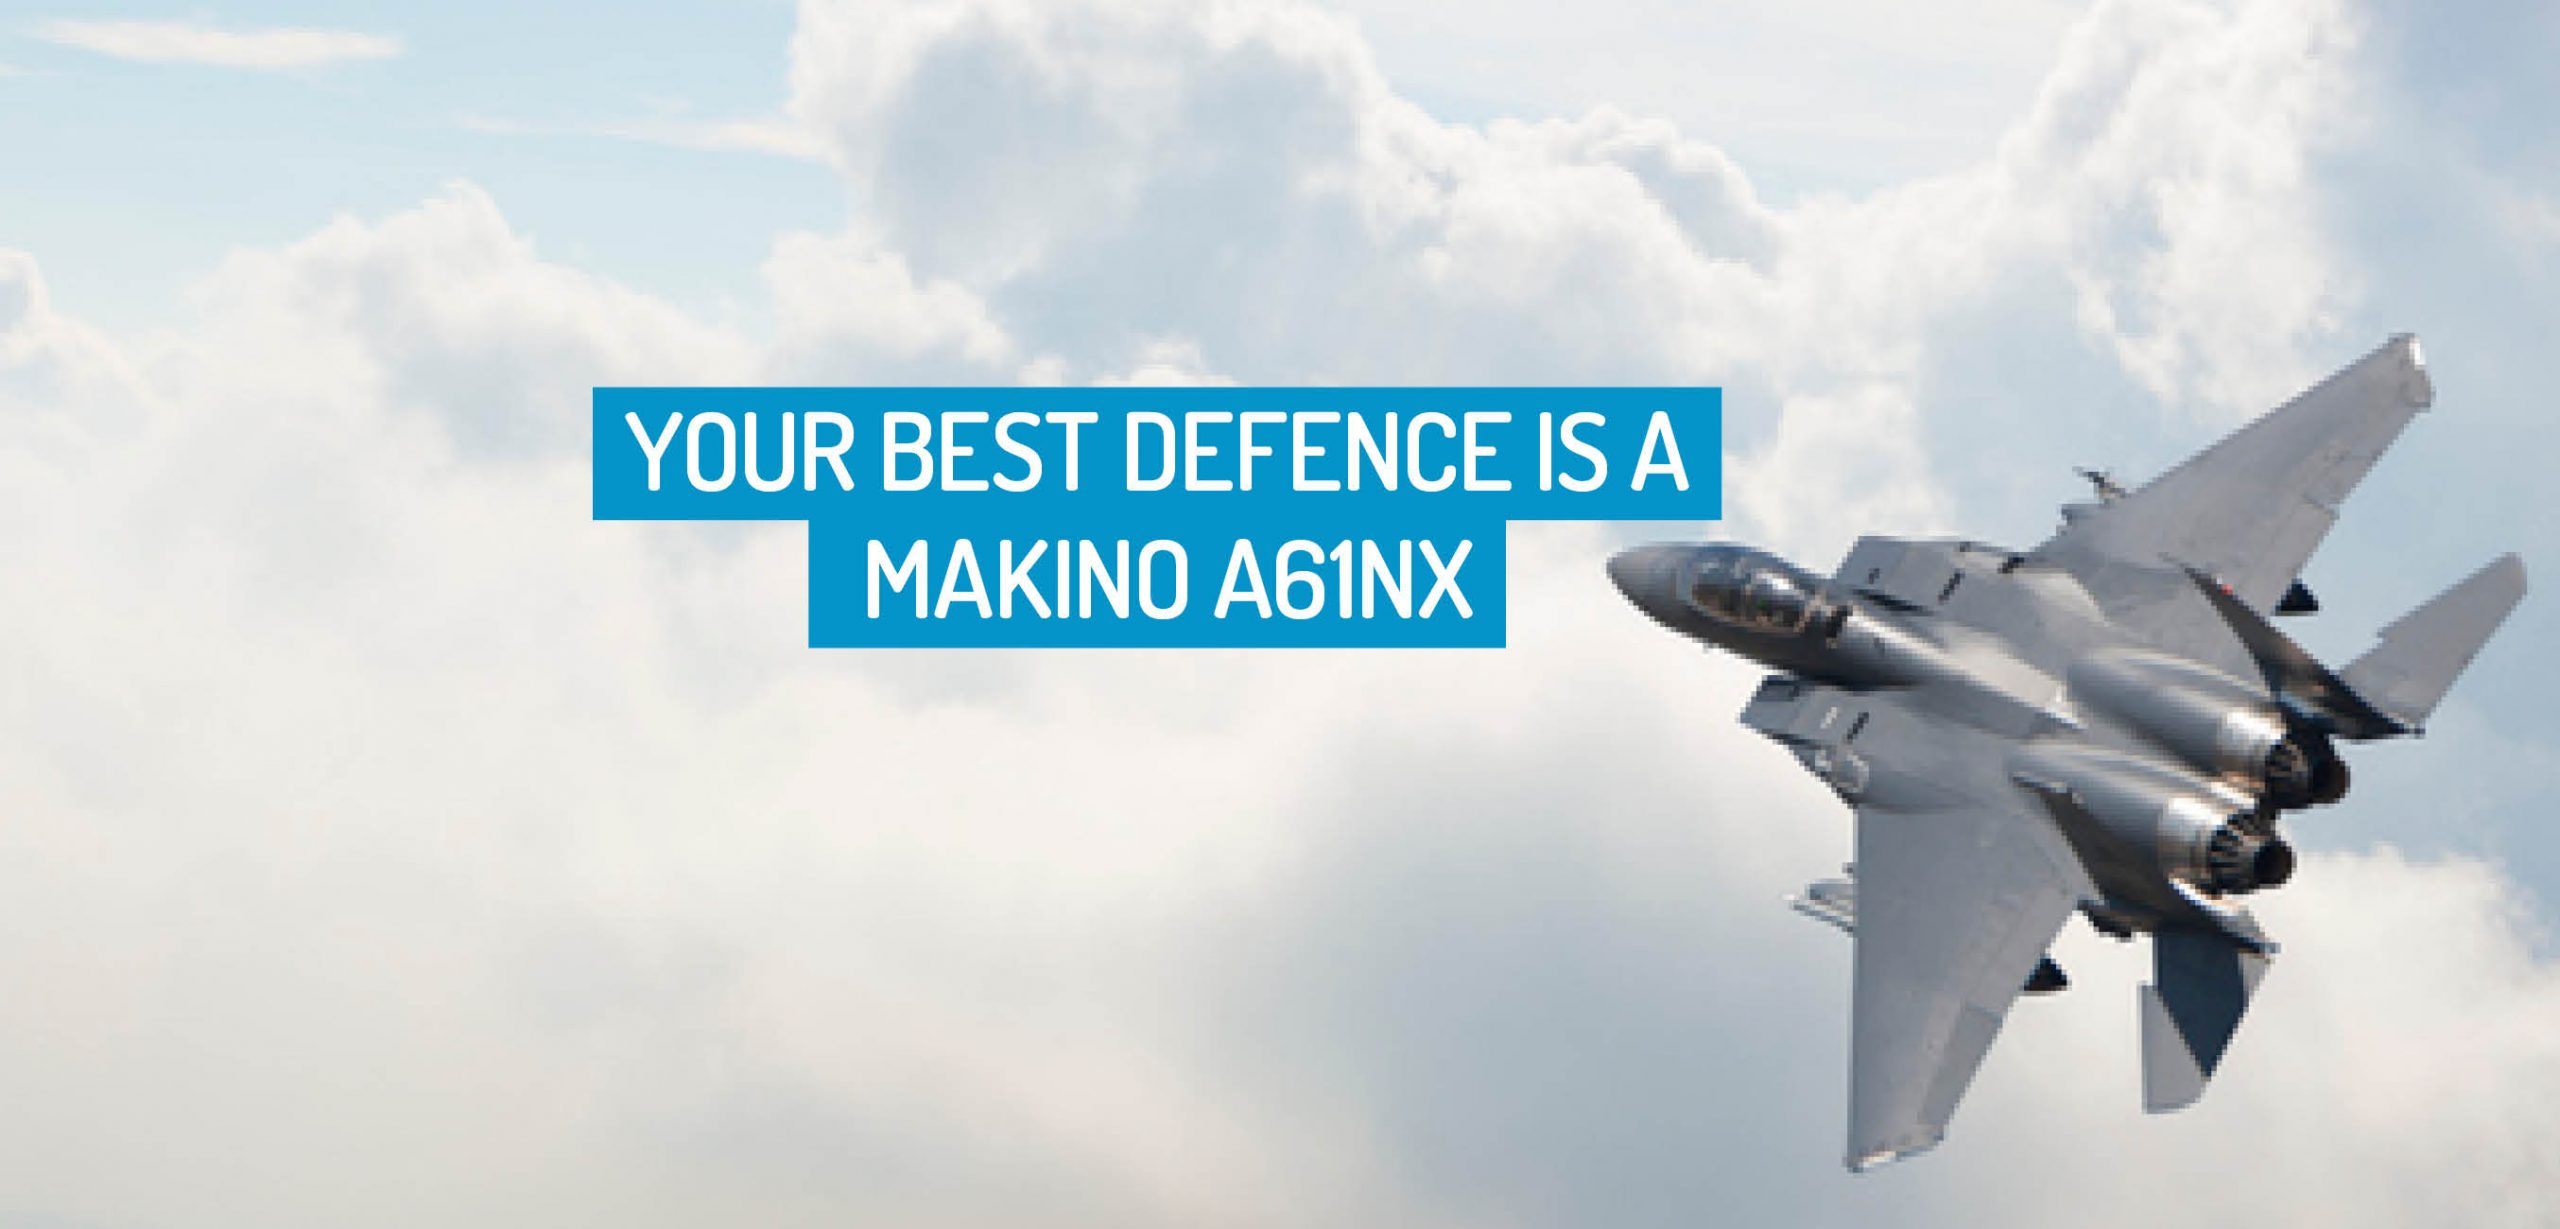 makino a61nx for defence